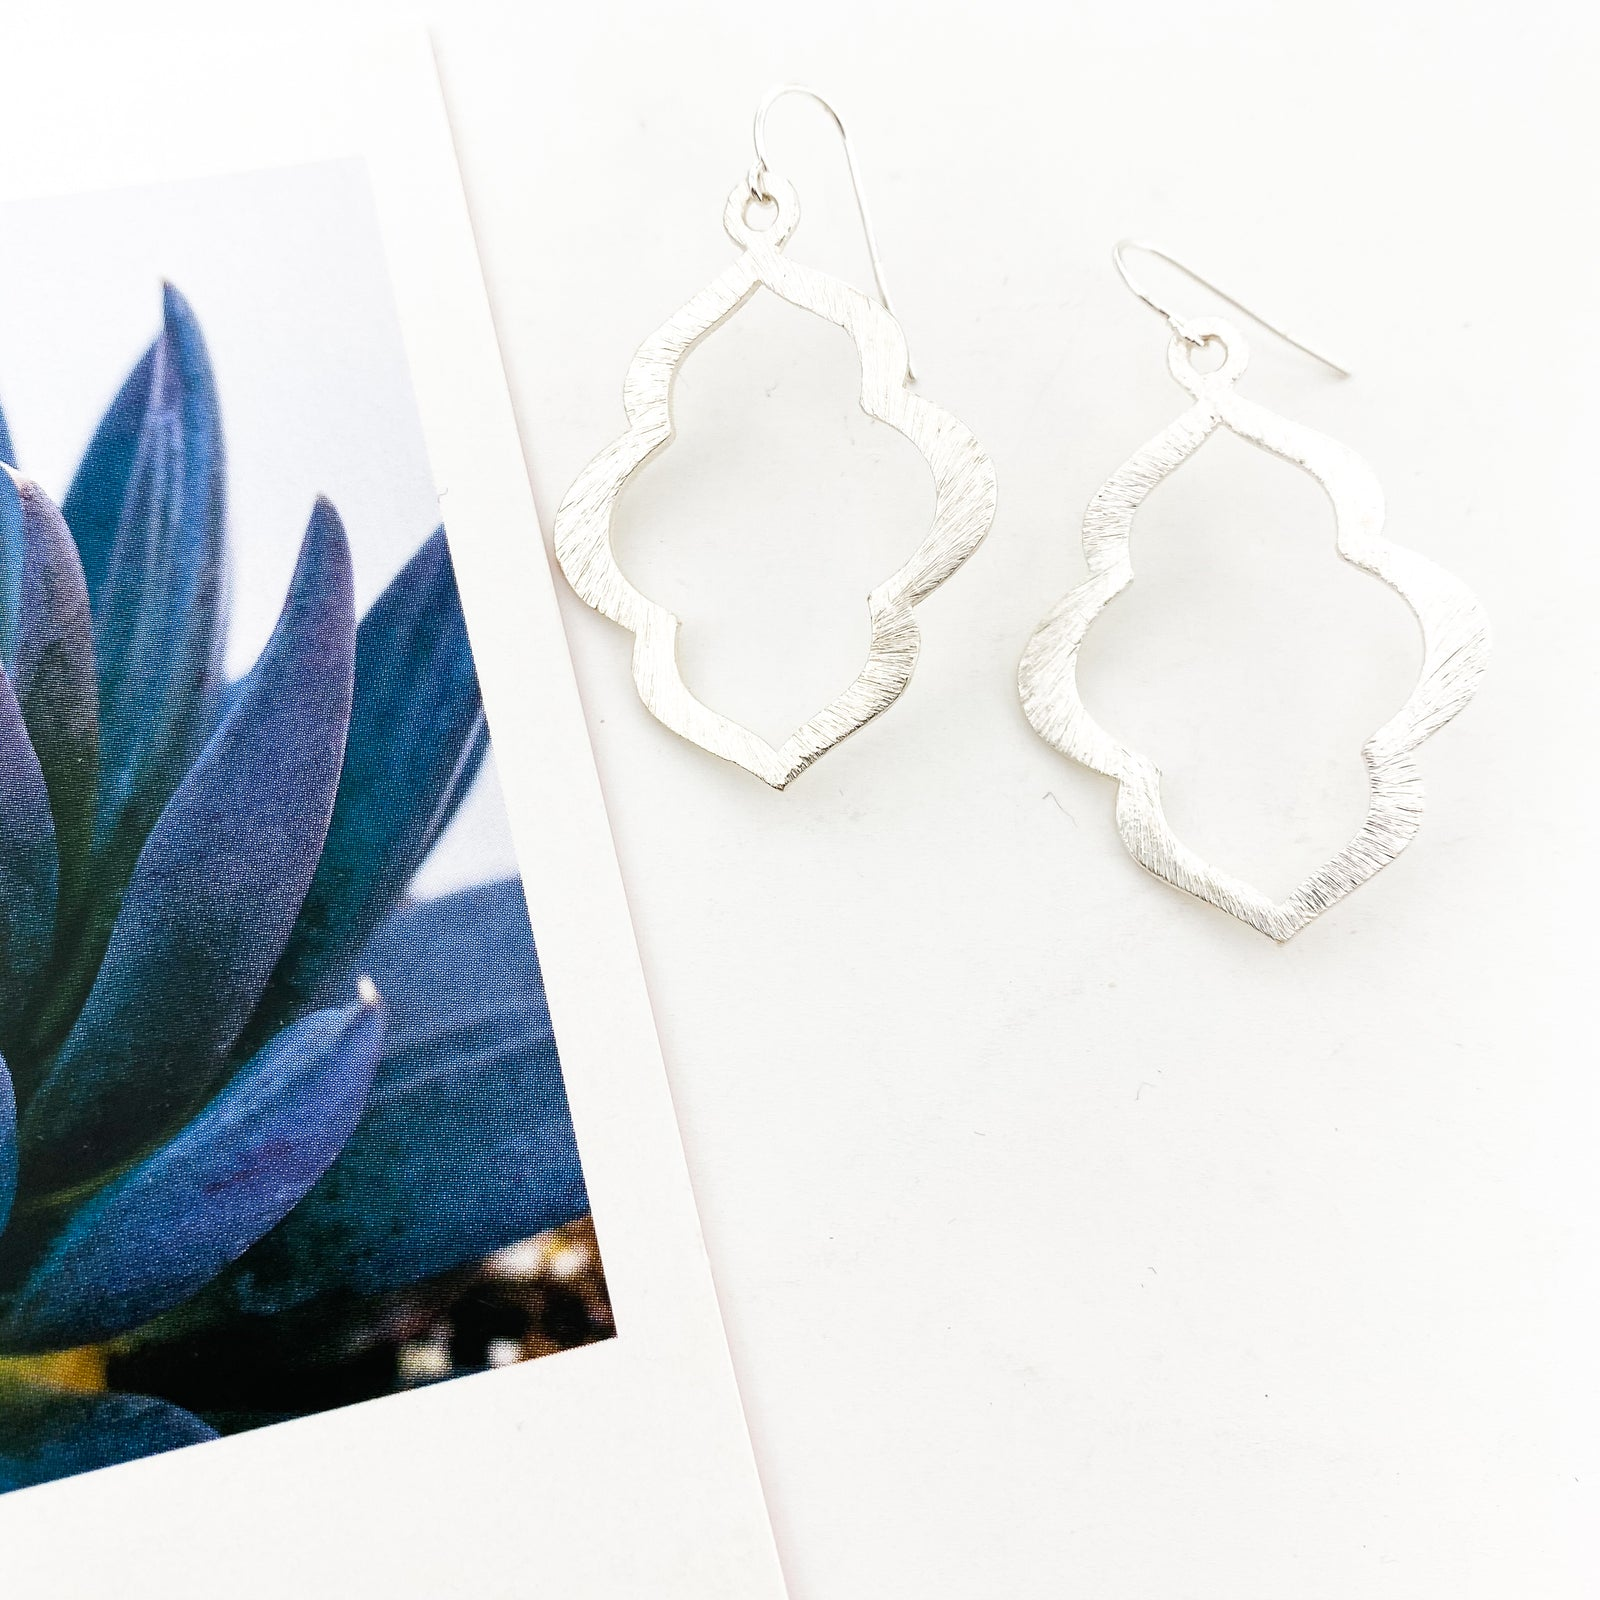 BRUSHED OGEE EARRINGS | STERLING SILVER | SIZE OPTIONS